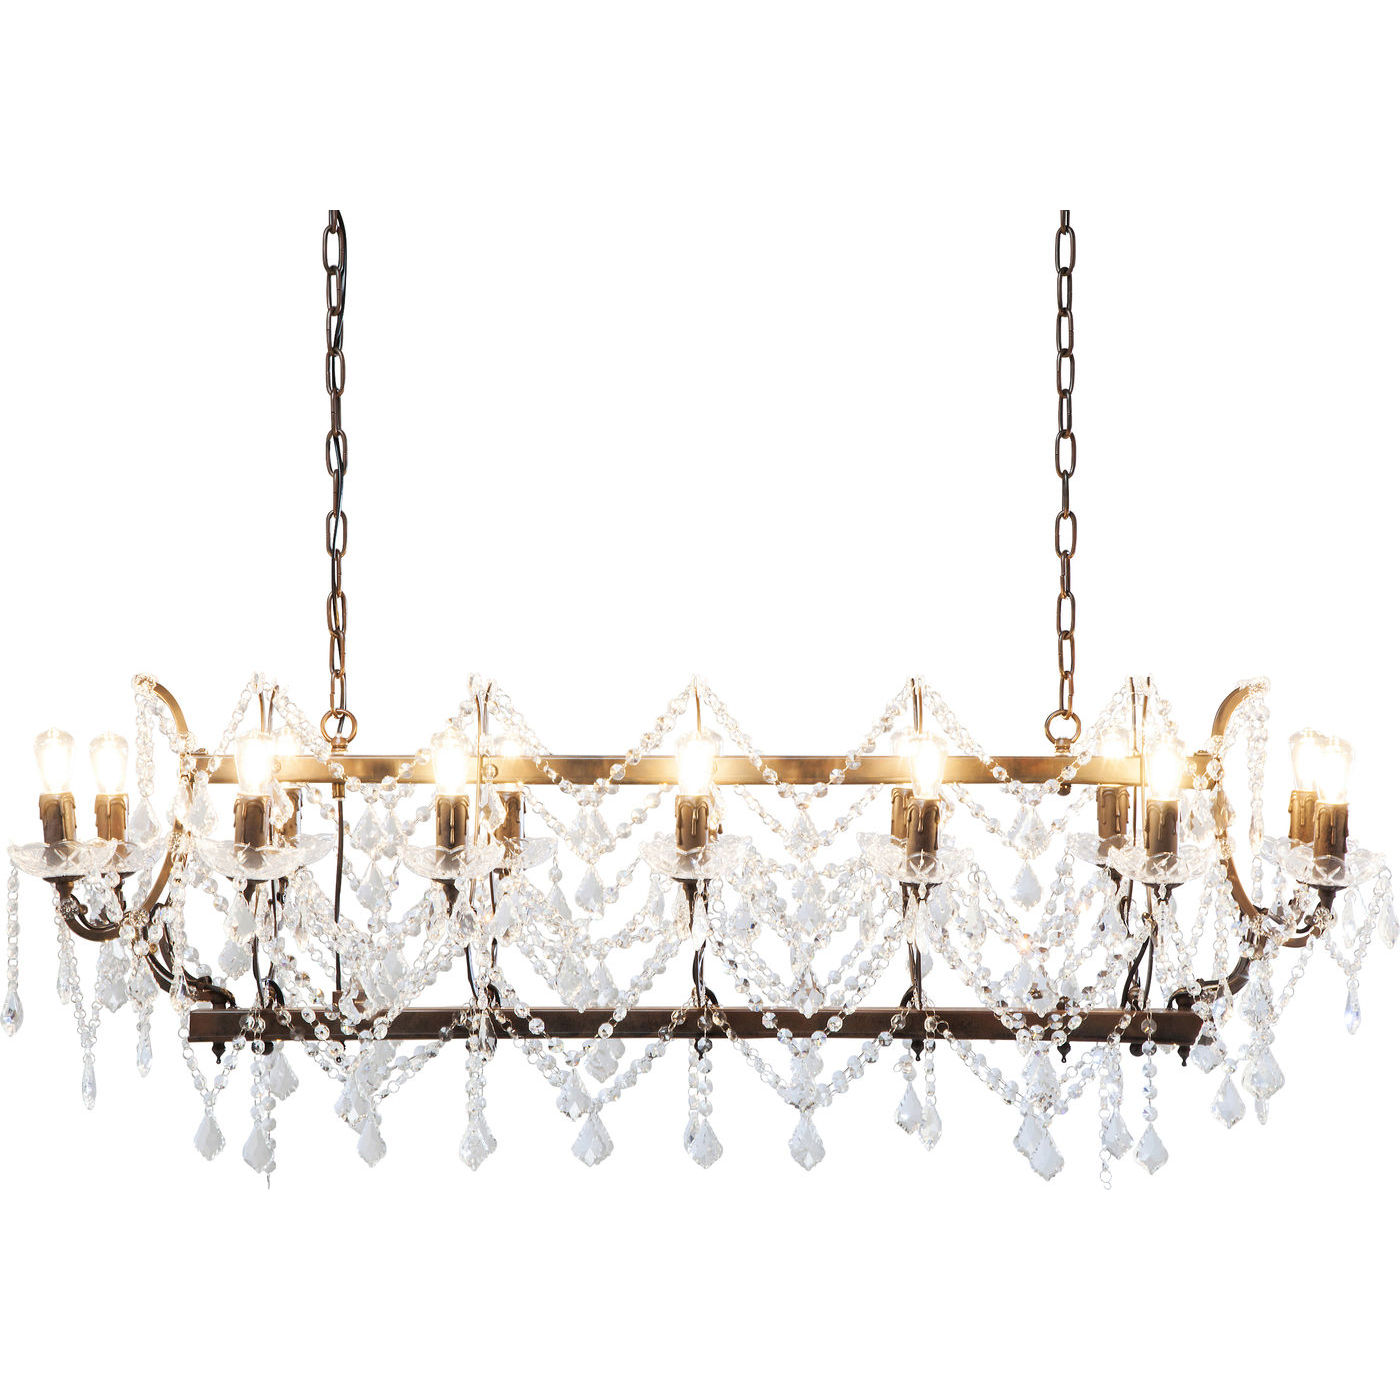 KARE DESIGN Loftslampe, Chateau Crystal Rusty